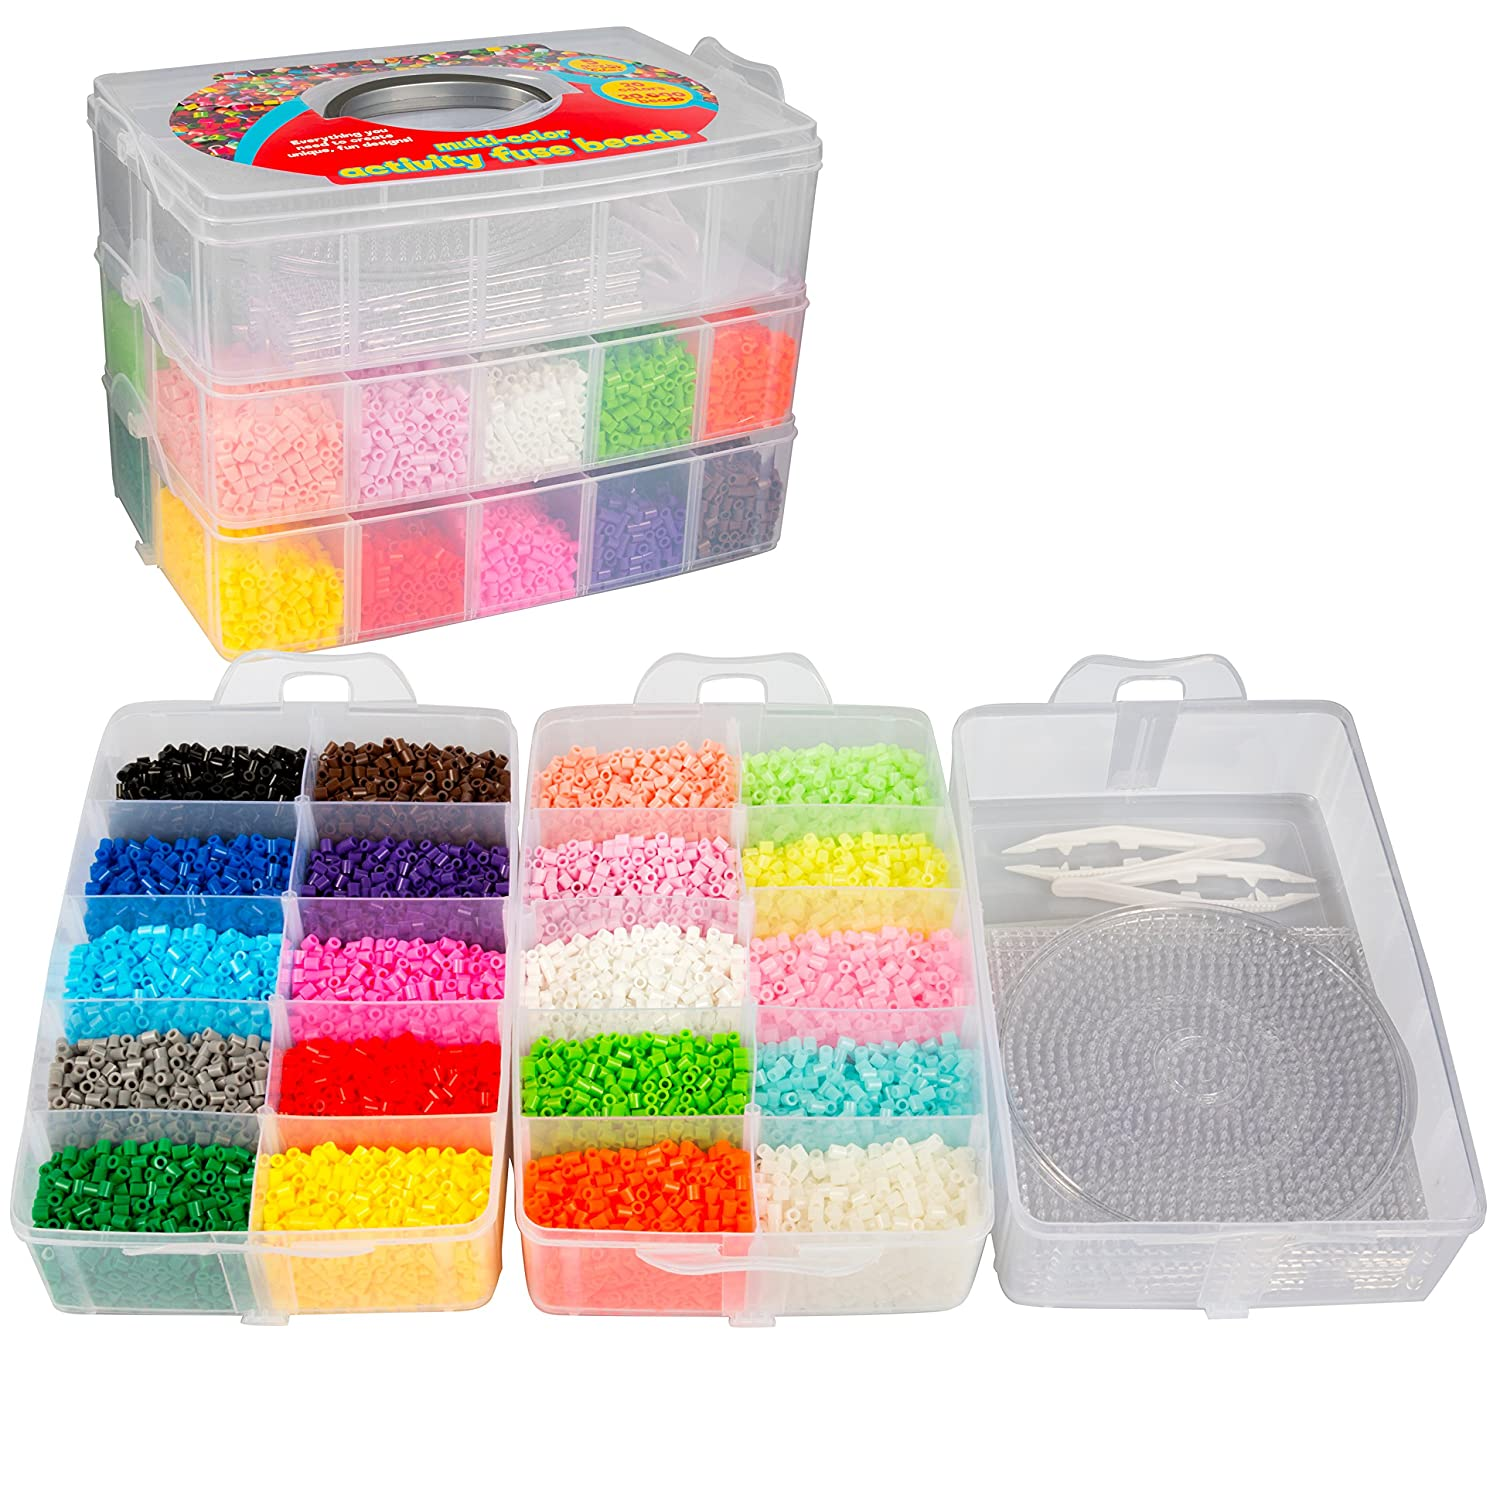 20,000 Fuse Beads 20 colors (5 Glow in the Dark), Tweezers, Peg Boards, Ironing Paper, Case - Works with Perler Beads